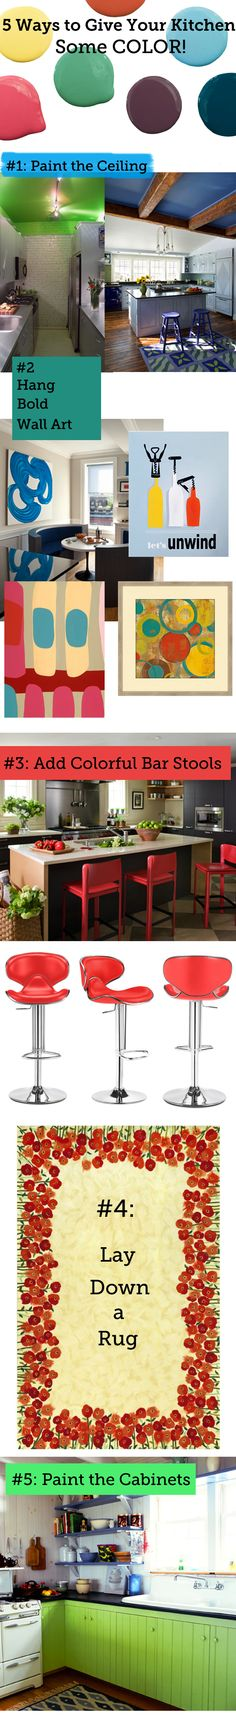 5 Ways to Give Your Kitchen Some Color